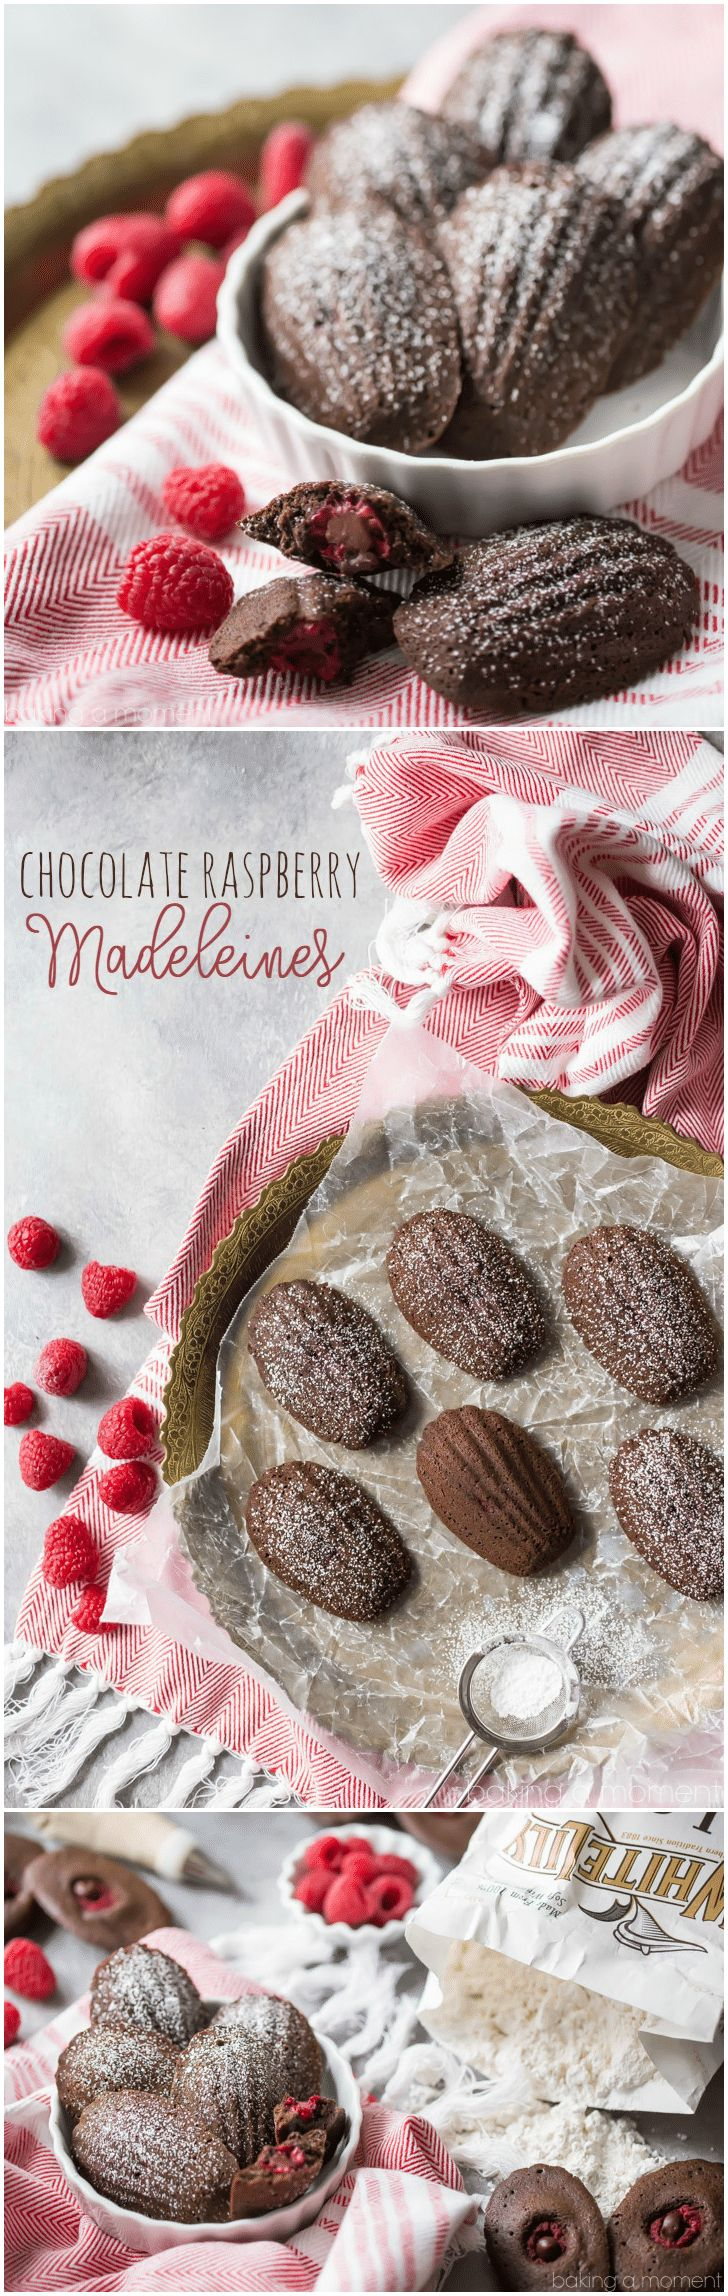 Chocolate Raspberry Madeleines: these little cakes are so perfect for a special occasion! Taste like a cake-y brownie, with a fresh raspberry baked inside. The shell shape couldn't be prettier! #BakeYourPassion #sponsored @White Lily